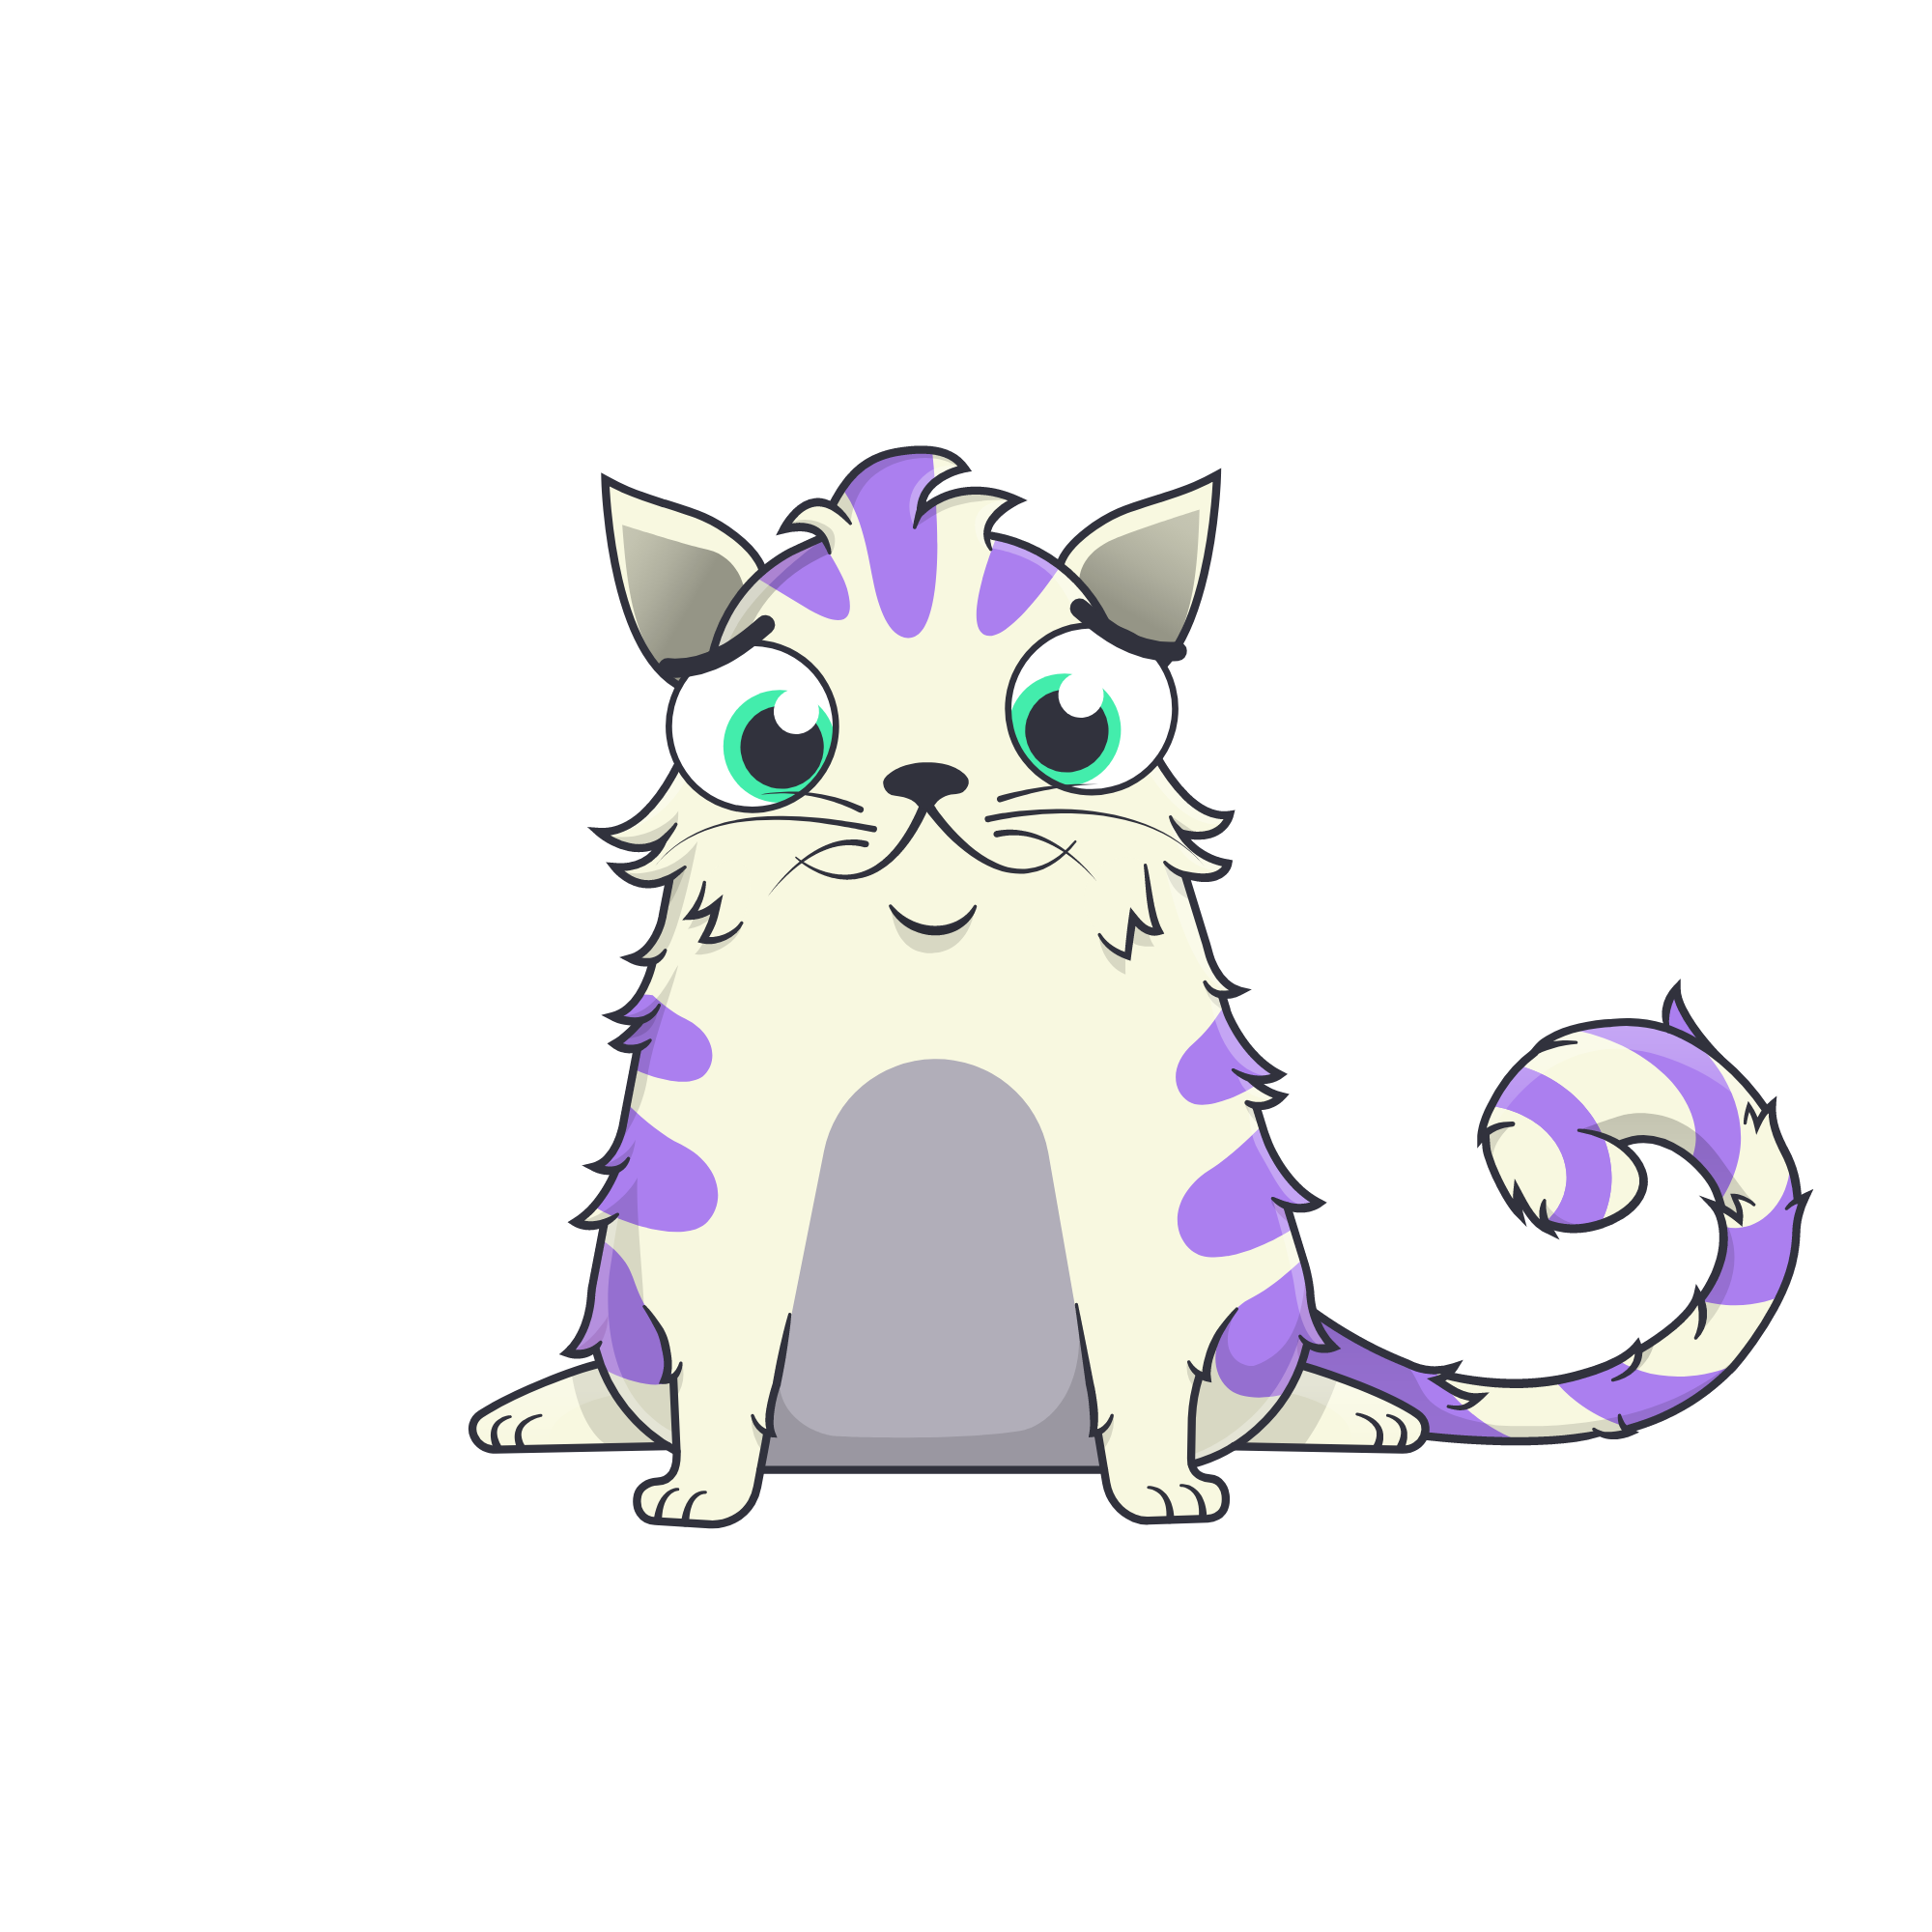 cryptokitty #1186656